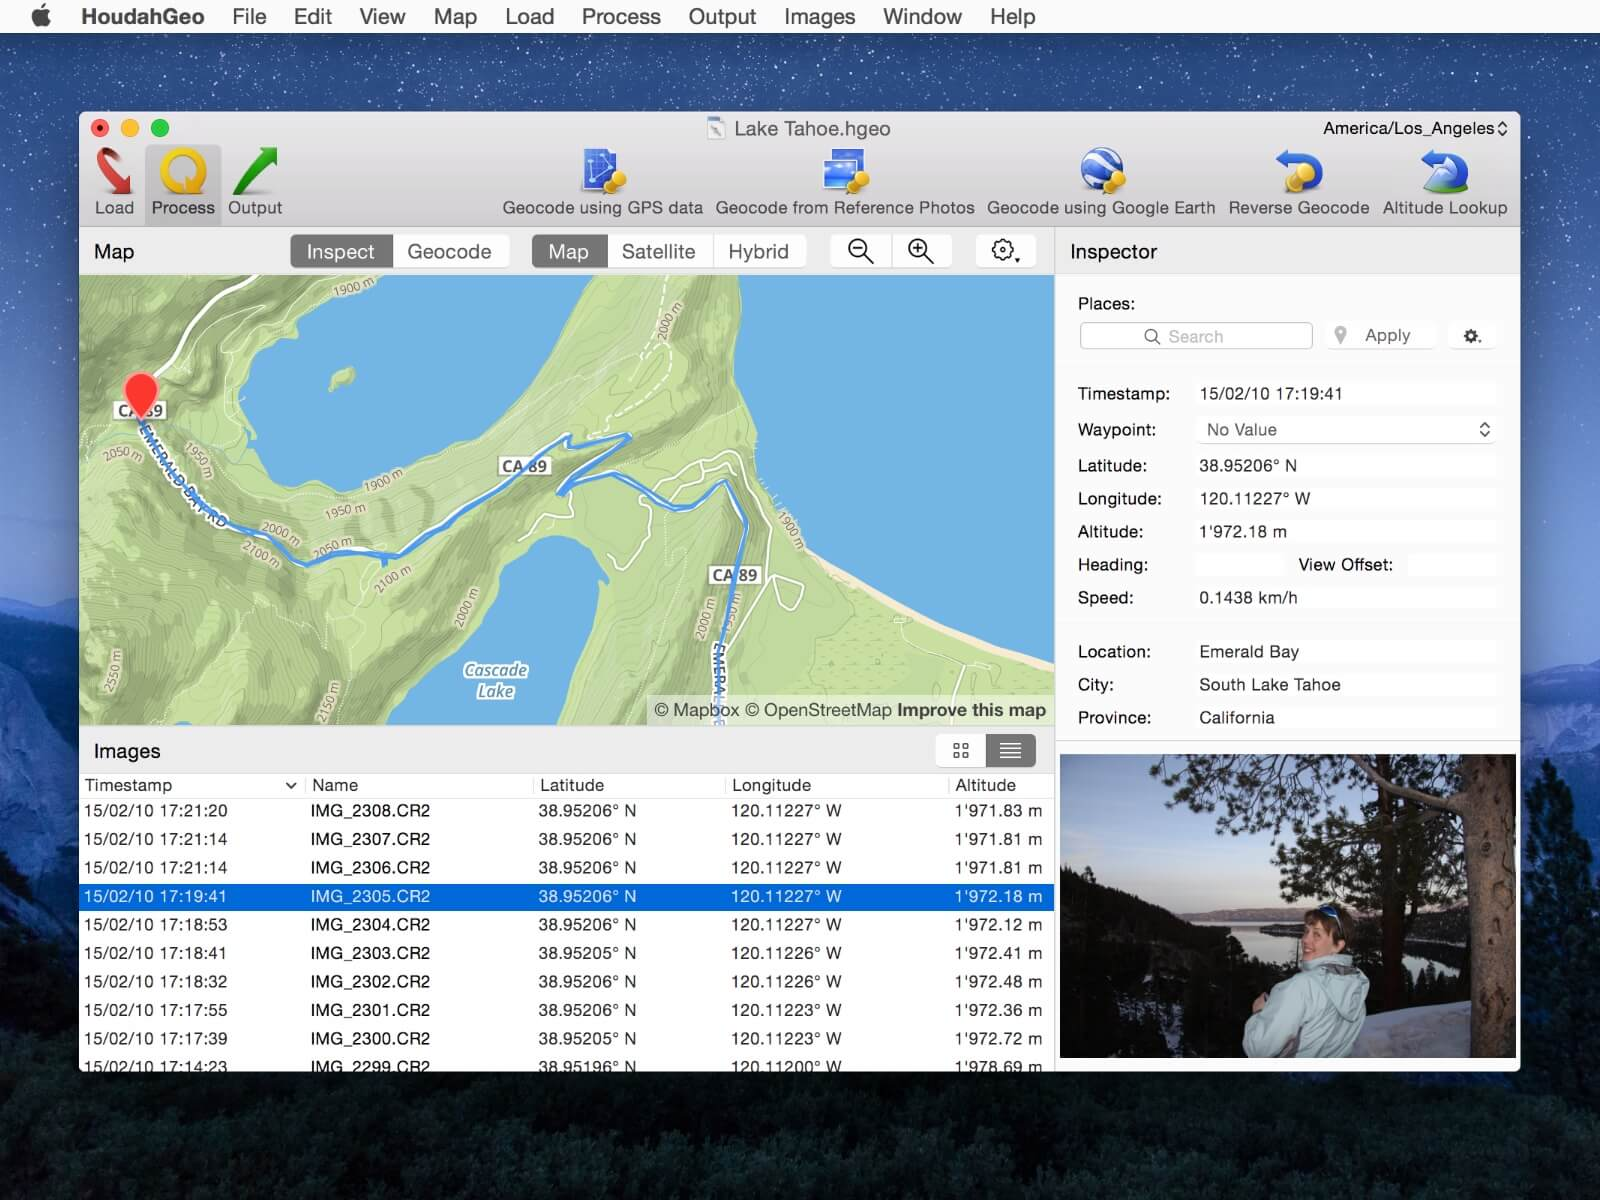 HoudahGeo 5.0: Photo geotagging for Mac - Know where you took that photo Image